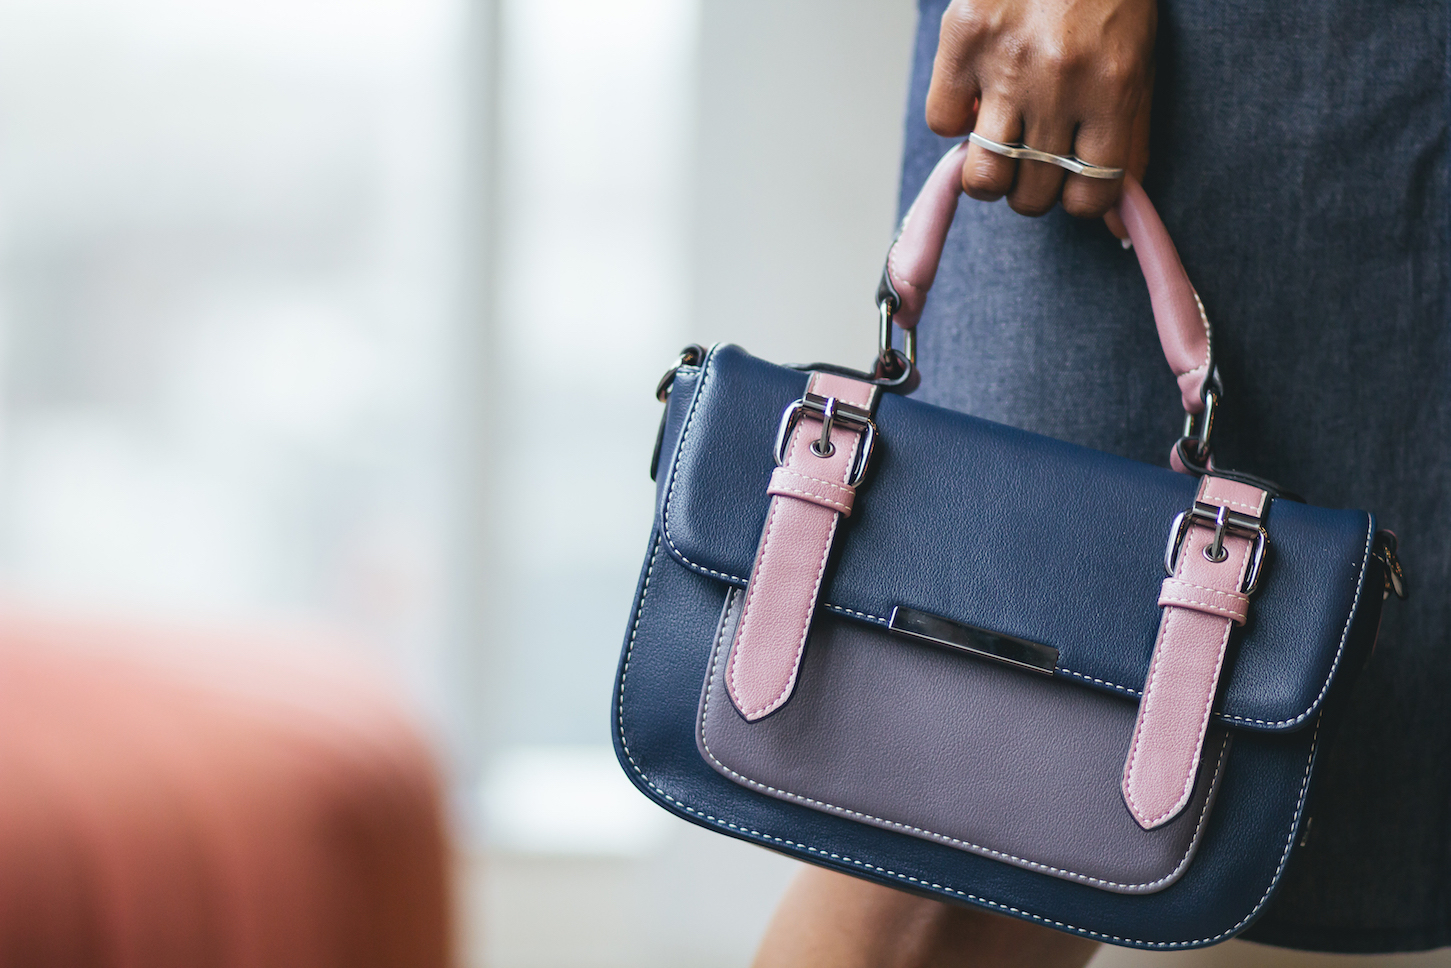 Cute pink and blue vegan handbag // Week Of Outfits Series: A Week Of Well-Crafted & Beautiful Outfits With Kathleen Elie, Founder Of Conscious & Chic on The Good Trade